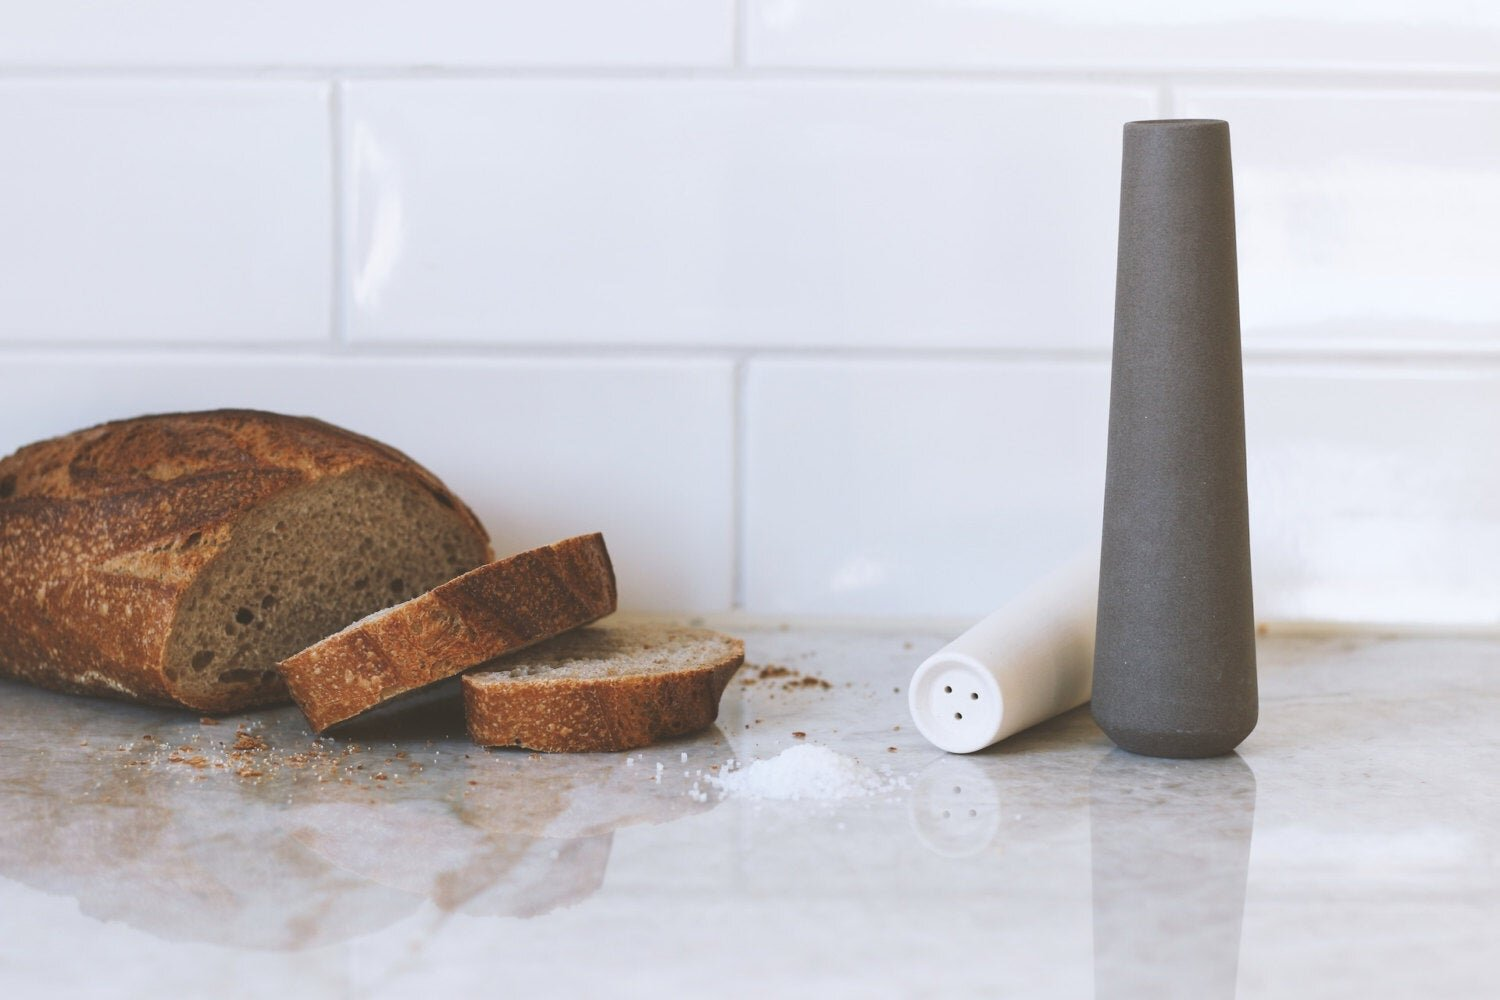 Gray and White Ceramic Salt and Pepper Shakers by Yahalomis